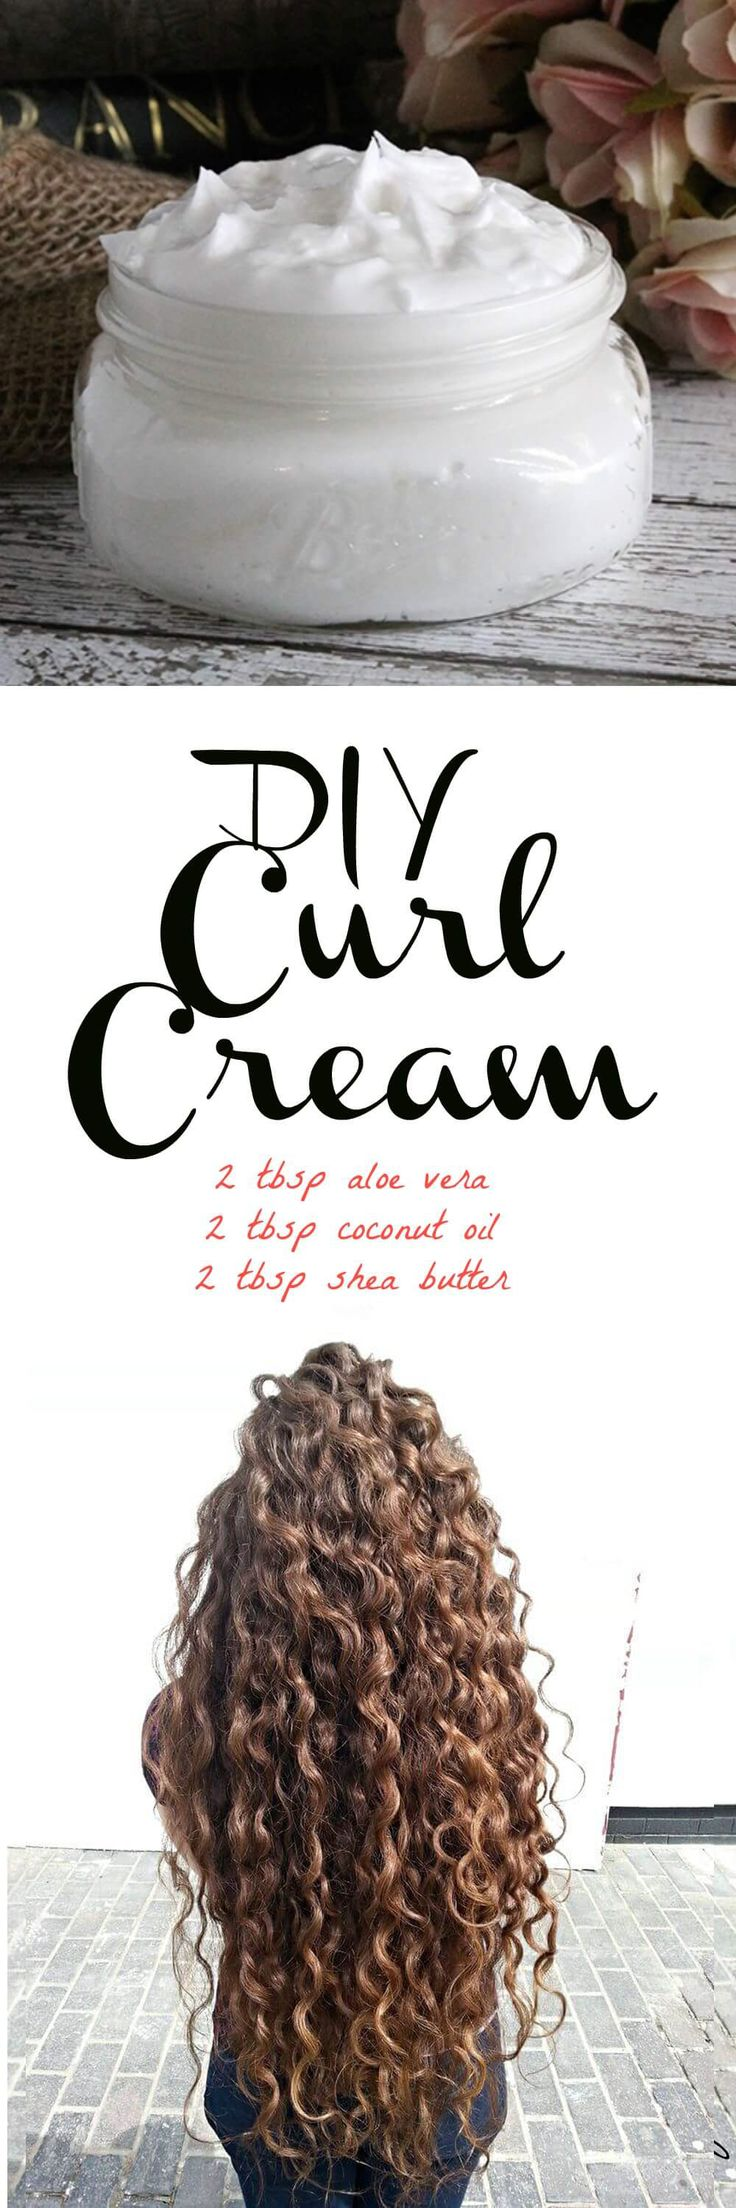 If you have curly or wavy hair, this DIY curl cream recipe will be right up your...